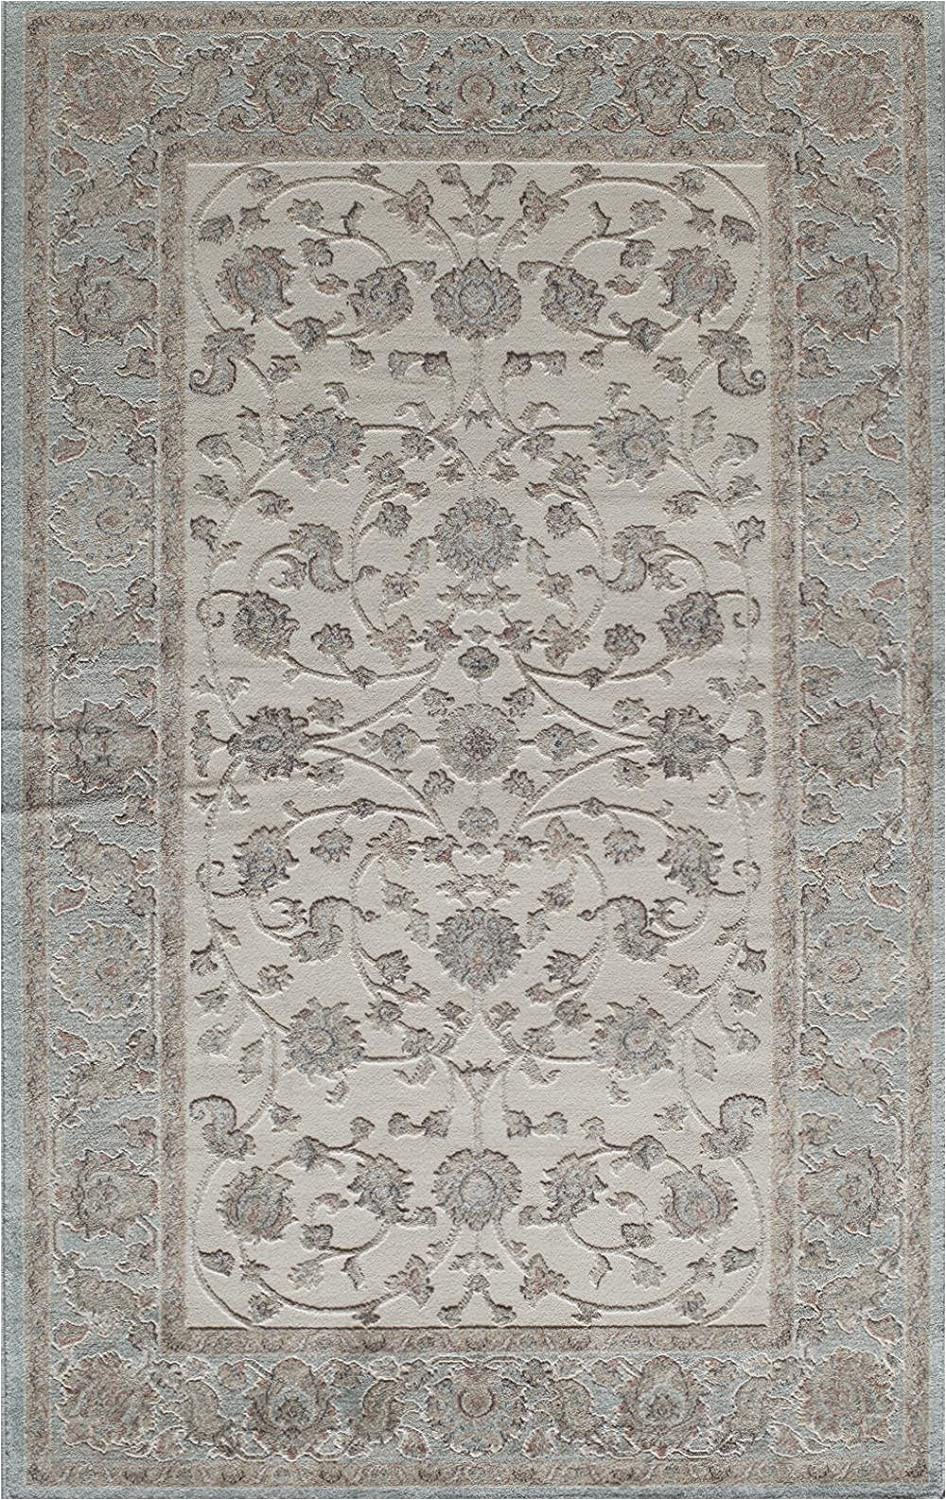 8 Ft by 10 Ft area Rug Rugs America area Rug 8 Ft 0 In X 10 Ft 0 In Ivory Blue